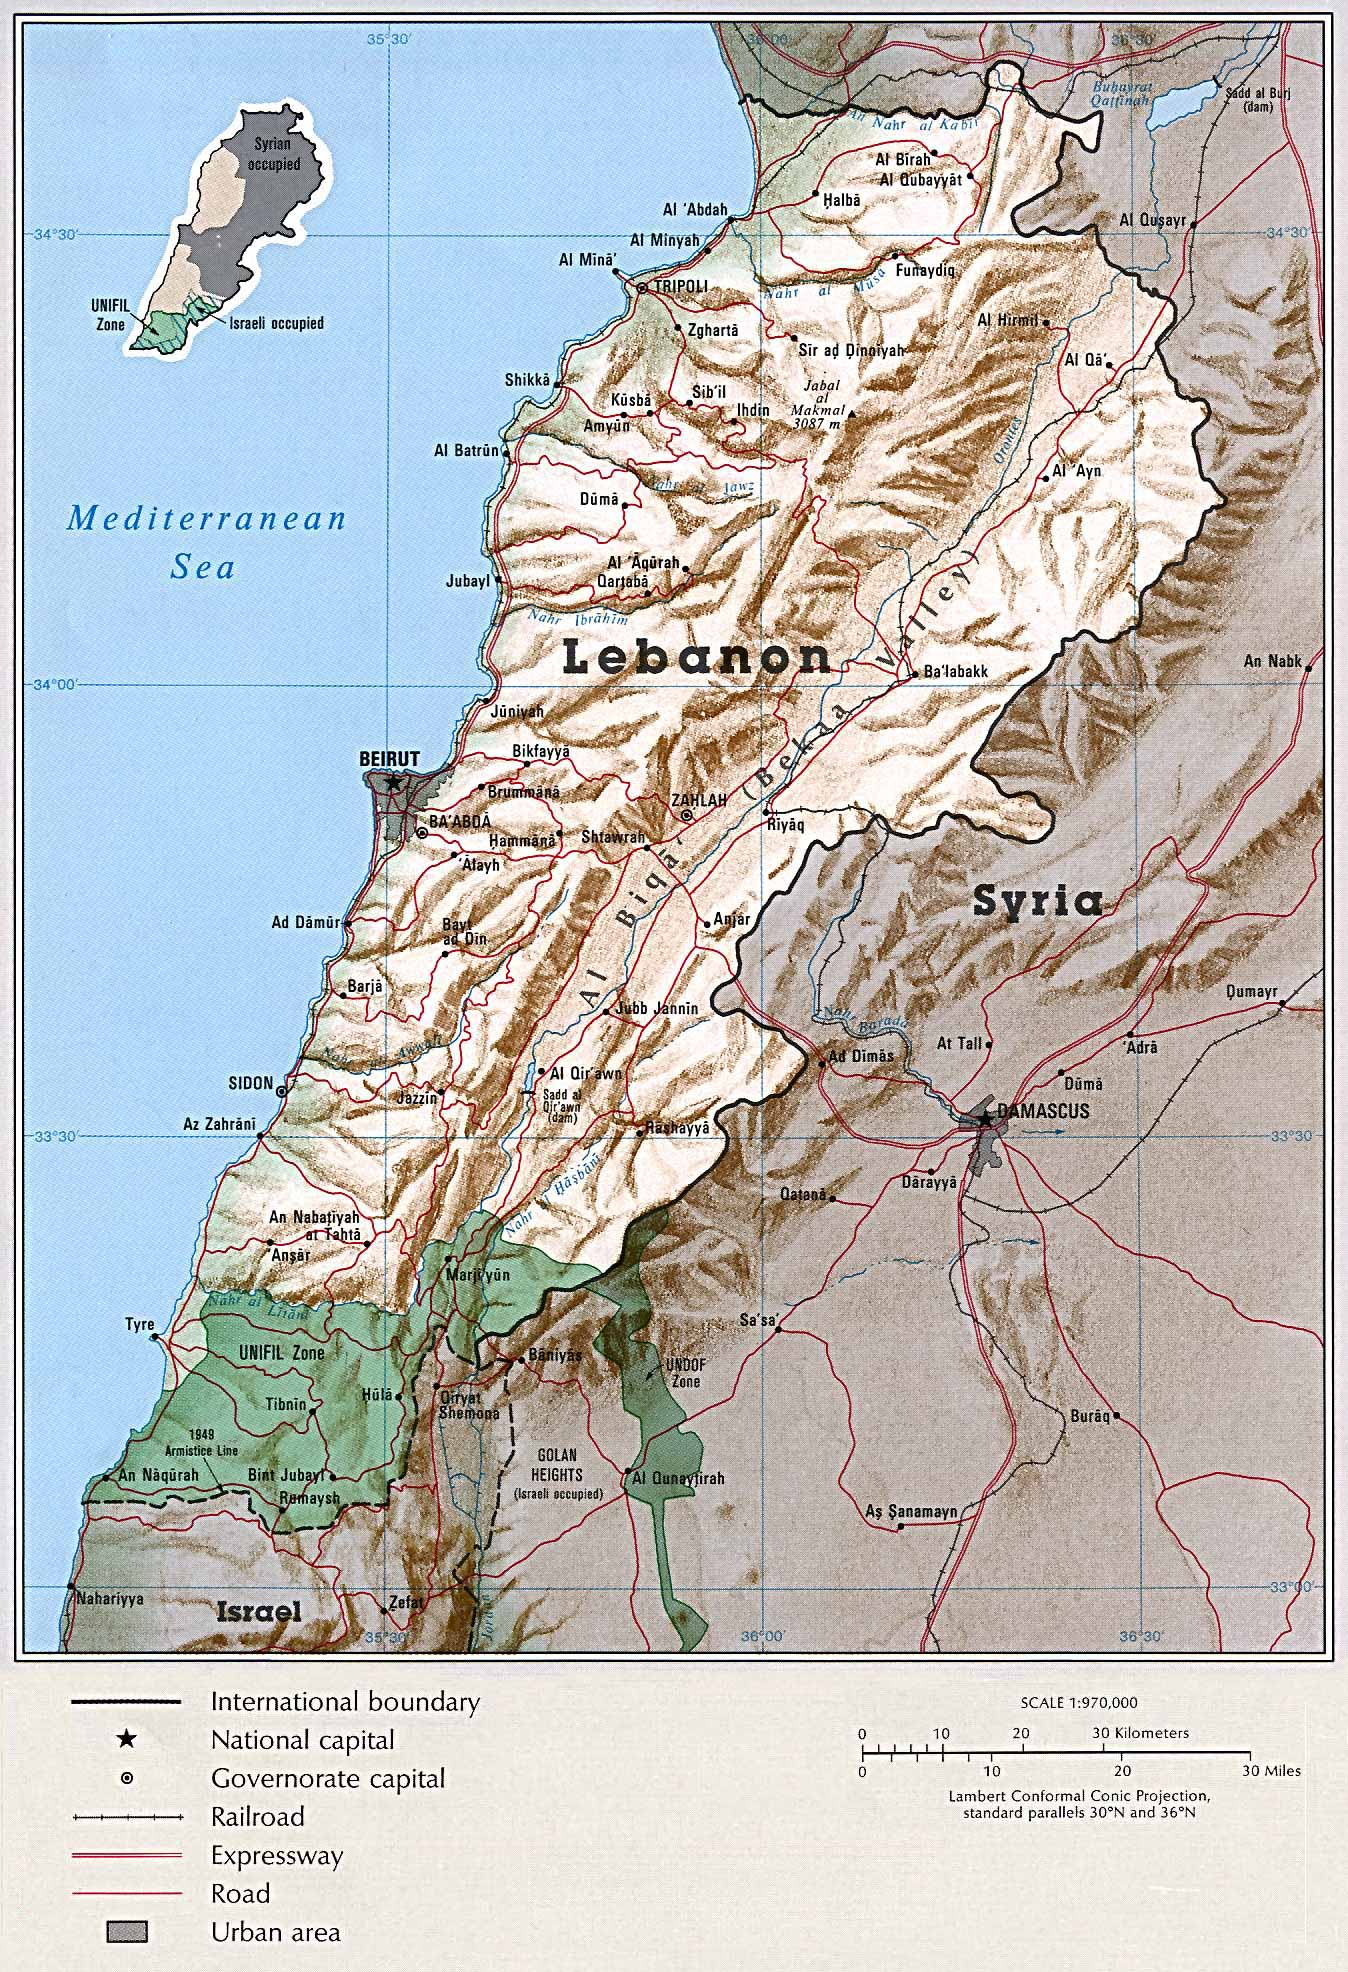 an overview of lebanon a middle eastern country First of all, none of these (beside egypt - where women rape is 1000000x lebanon's) are in the middle east read op's question again second, all these country experienced the arab spring.